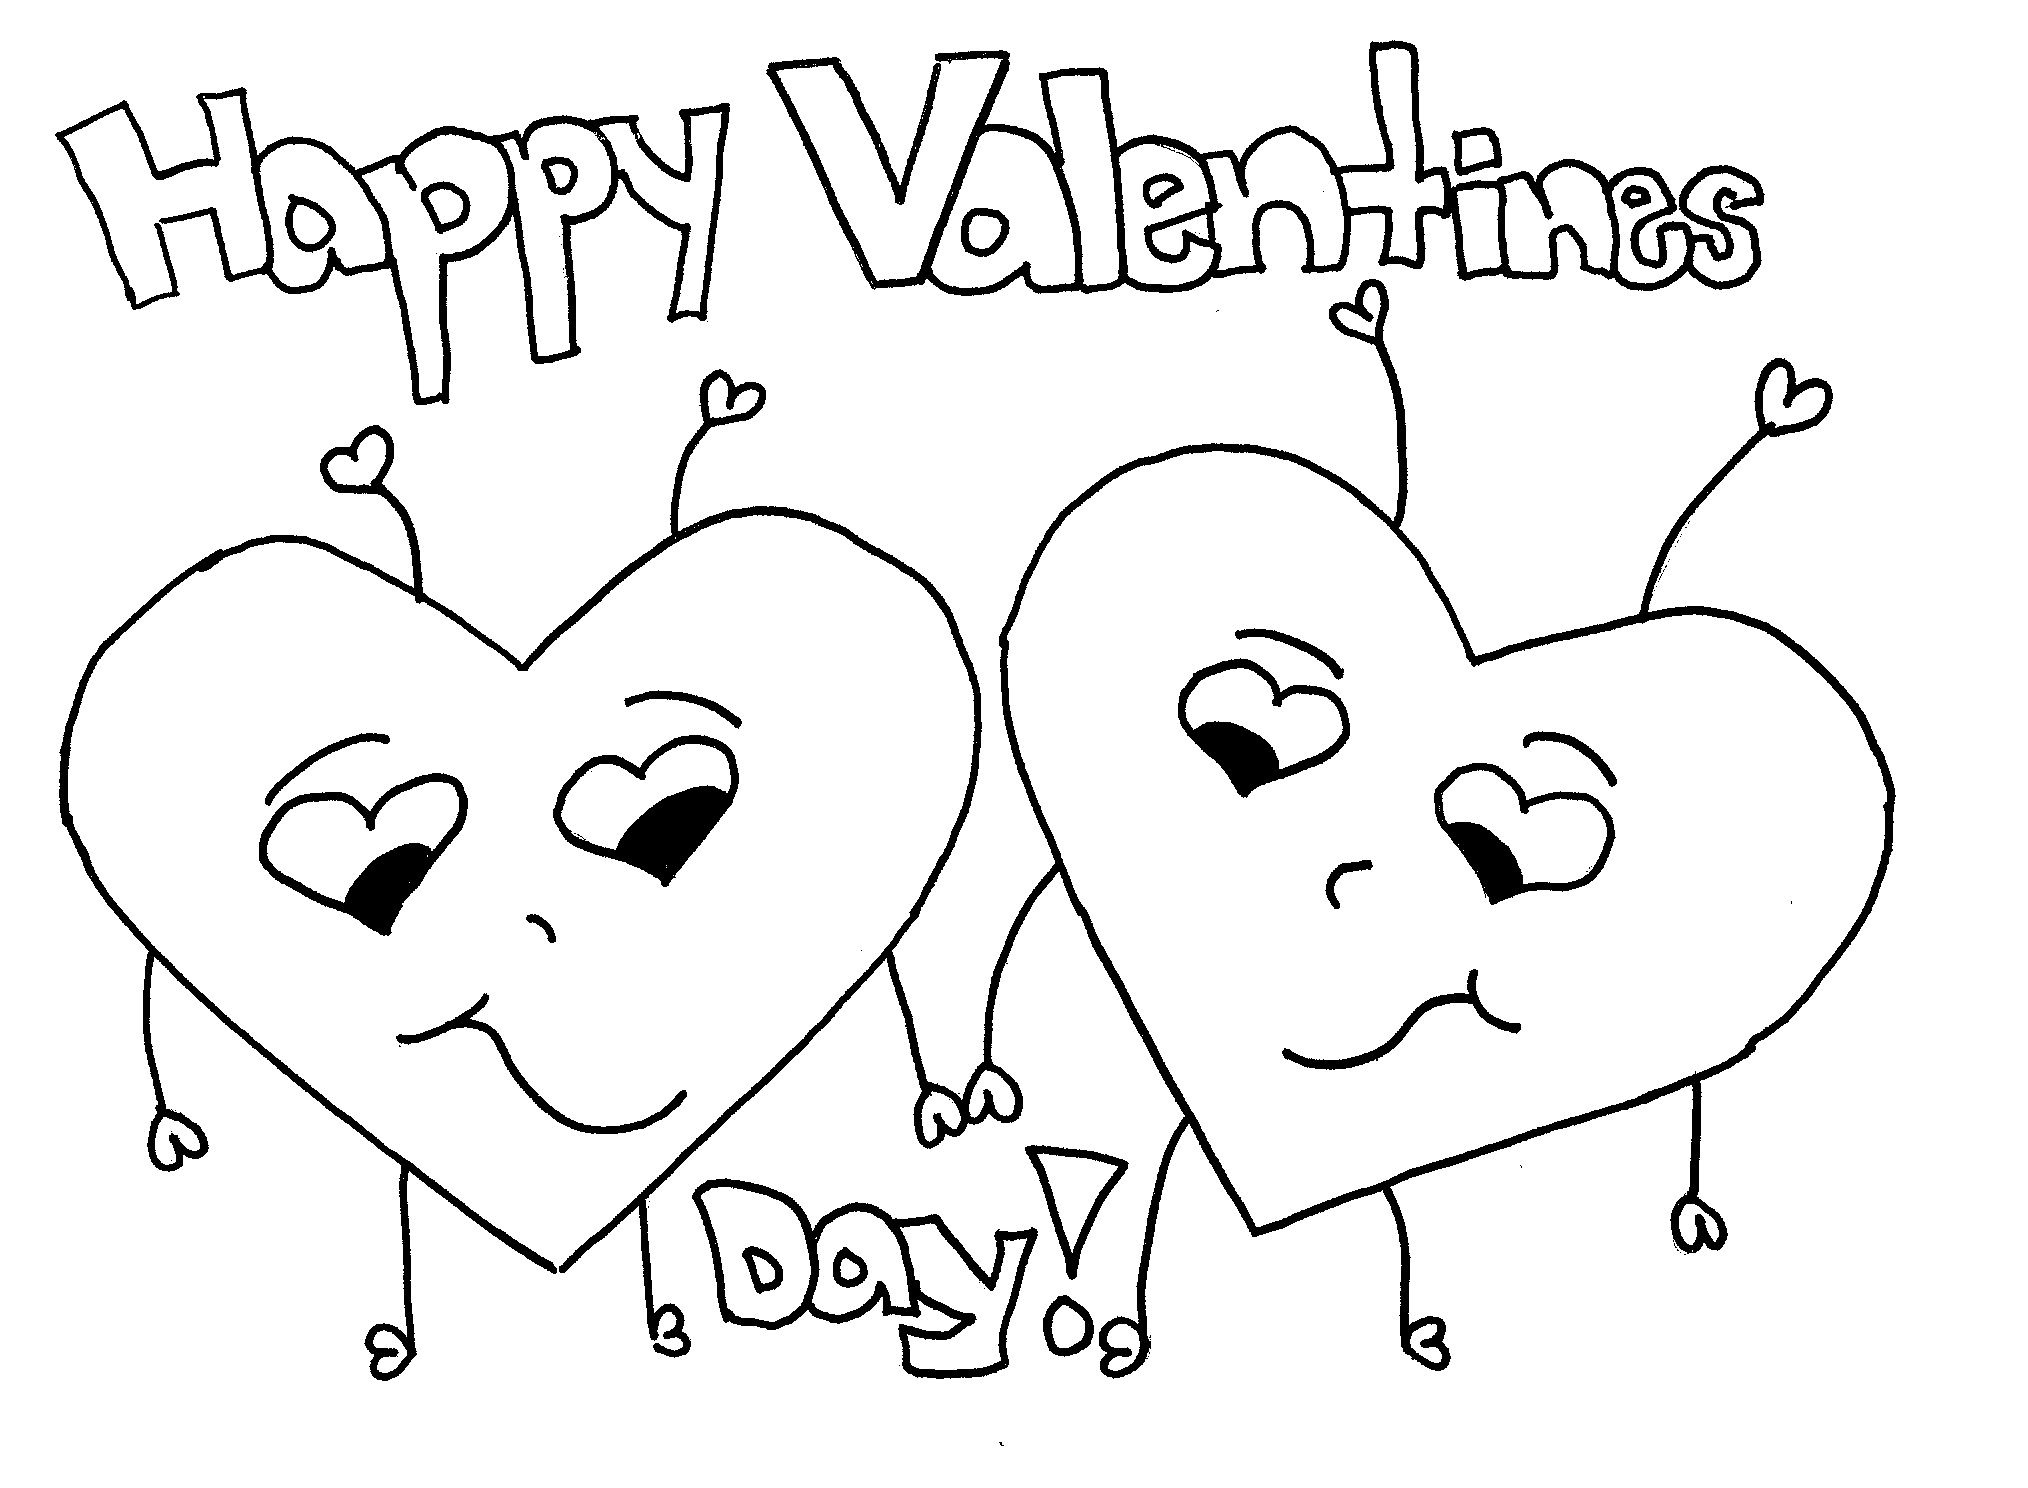 photo about Free Printable Valentines Coloring Pages named 25 Absolutely free Printable Valentines Working day Coloring Internet pages Collections